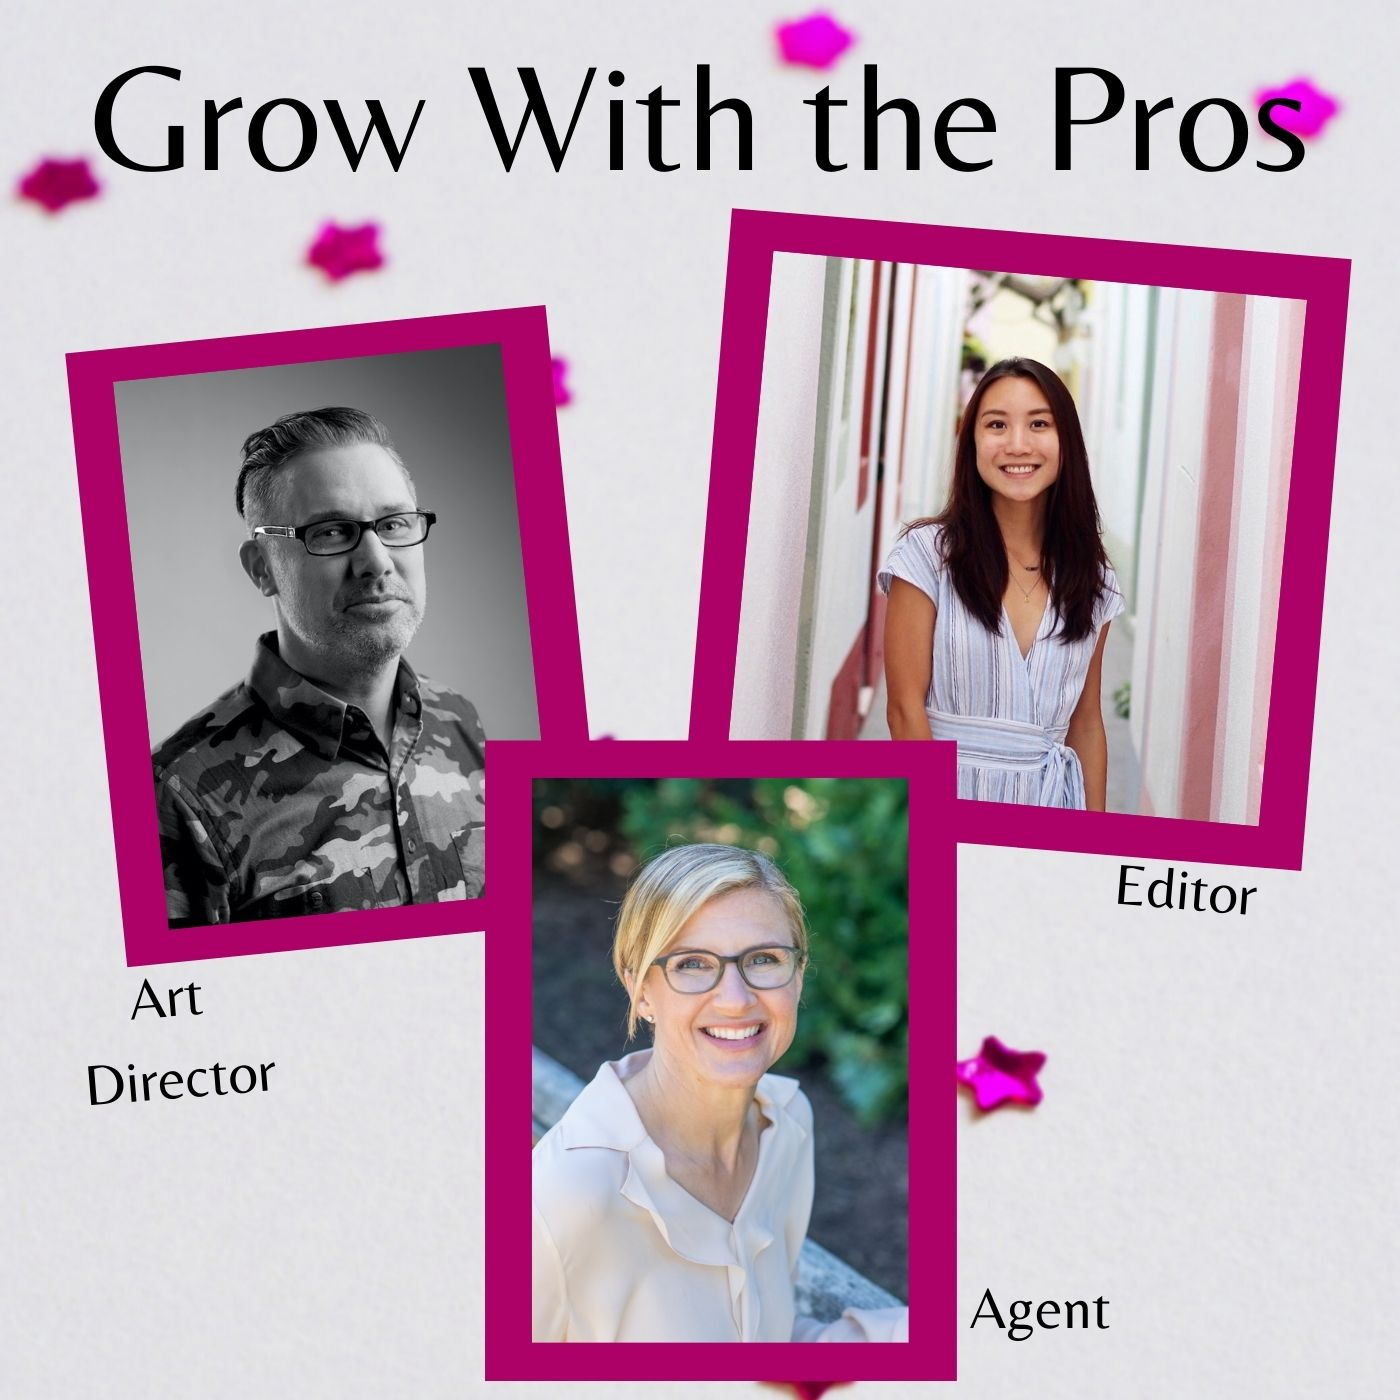 Join us... for three terrific webinars given by industry professionals! Click in each of the following names to be taken their pages for more information and to sign up when registration opens: Editor Erin Siu - March 13, 2021 Art Director Kirk Benshoff - May 1, 2021 Agent Jennifer March Soloway - September 18, 2021